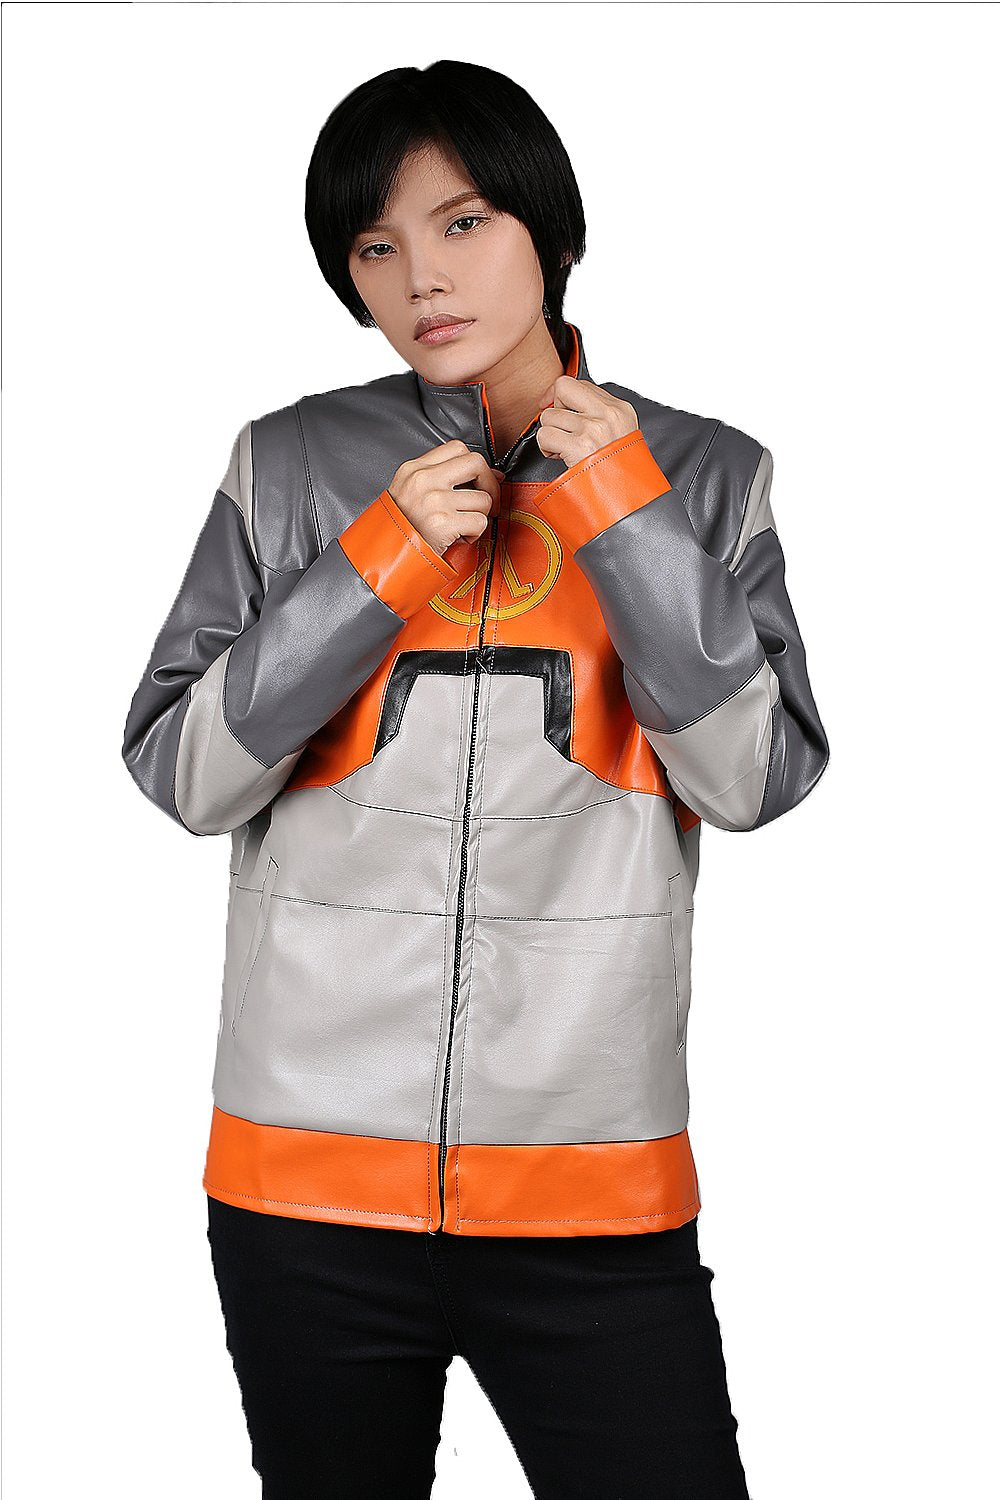 Half-Life 1 Dr. Gordon Freeman Leather Jacket Gray & Orange PU Leather Jacket - Xcoser Costume